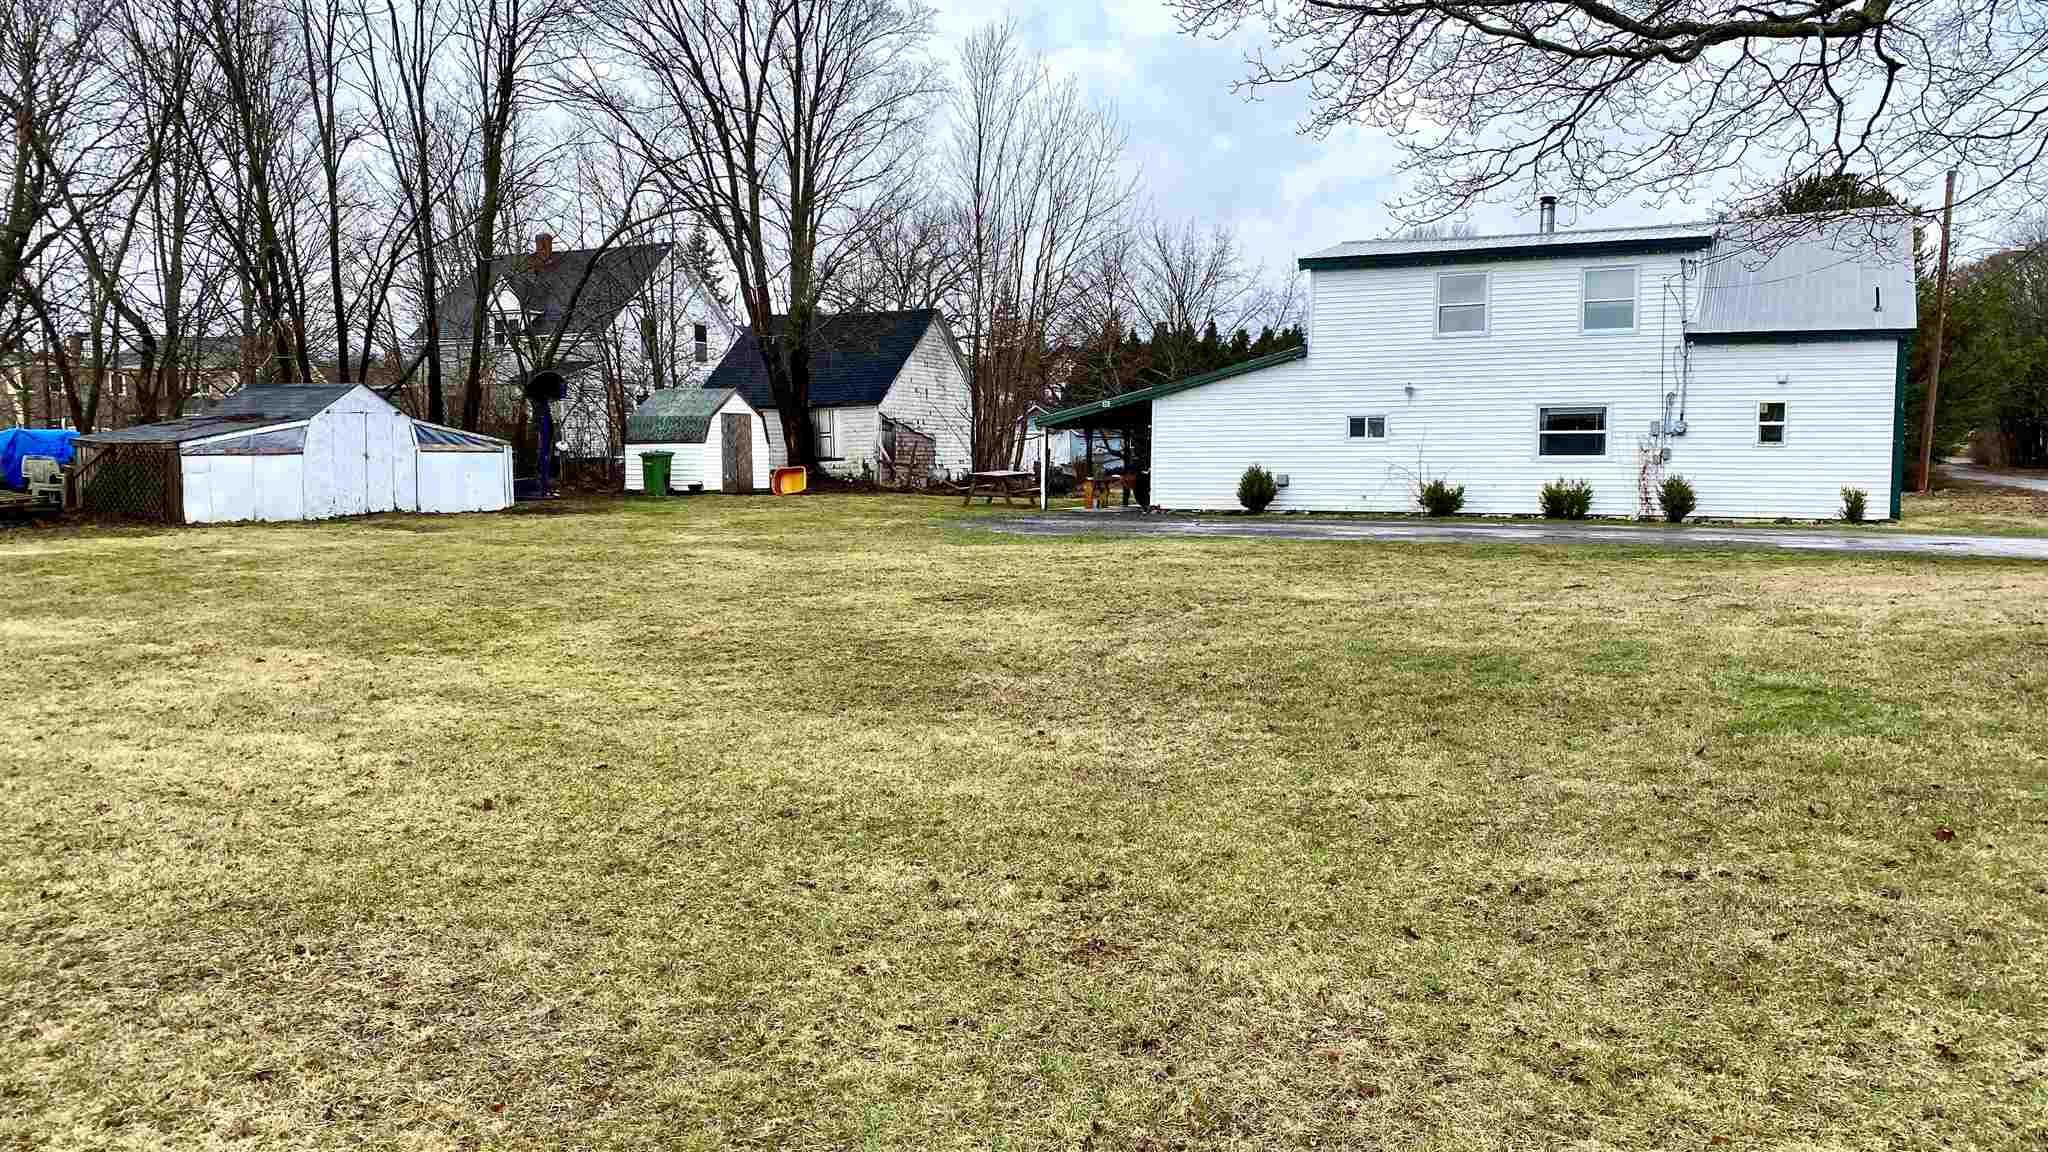 Main Photo: 1163 Park Street in Waterville: 404-Kings County Residential for sale (Annapolis Valley)  : MLS®# 202106391